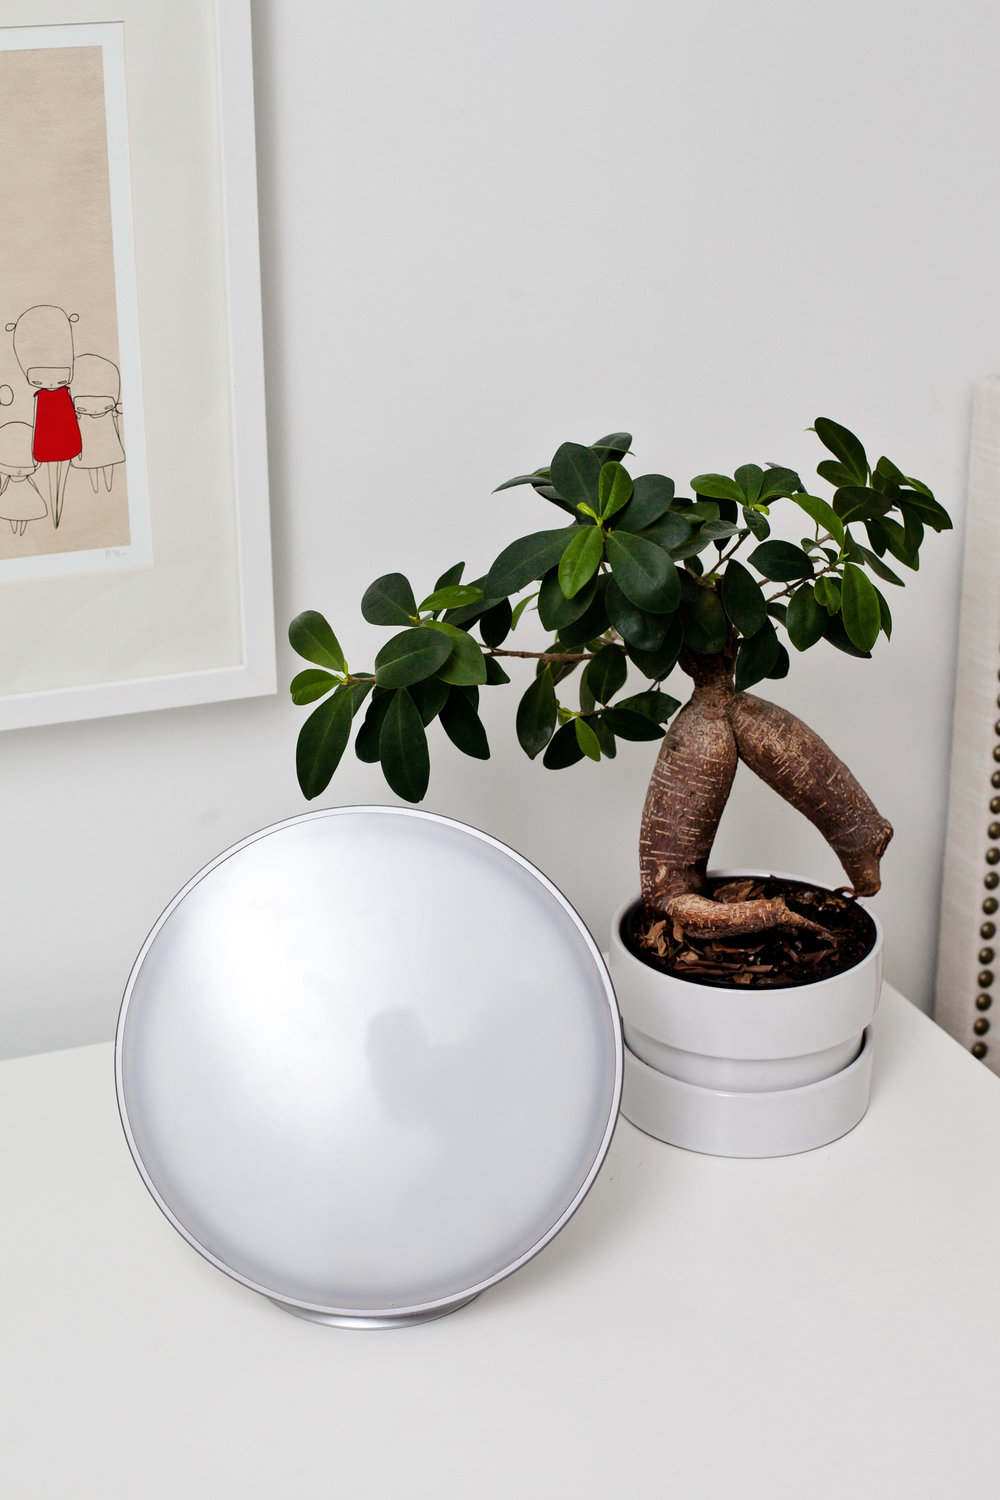 LAMPU -  Minimalist design with a classic, simple sphere and a hidden supporting base.